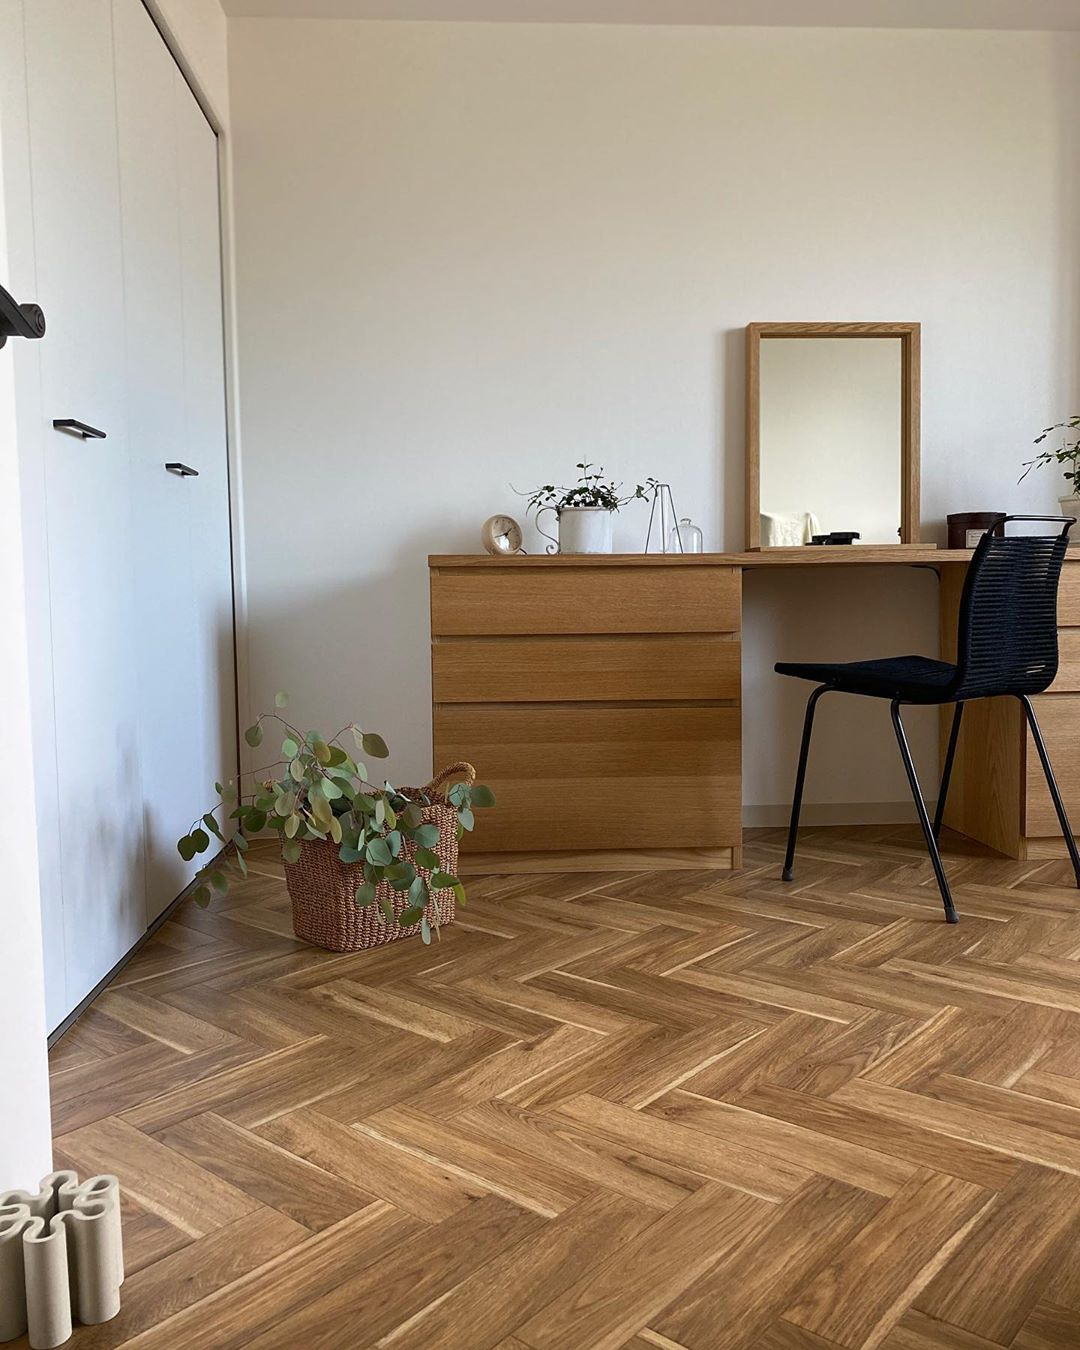 japanese home decor - bedroom with wood flooring